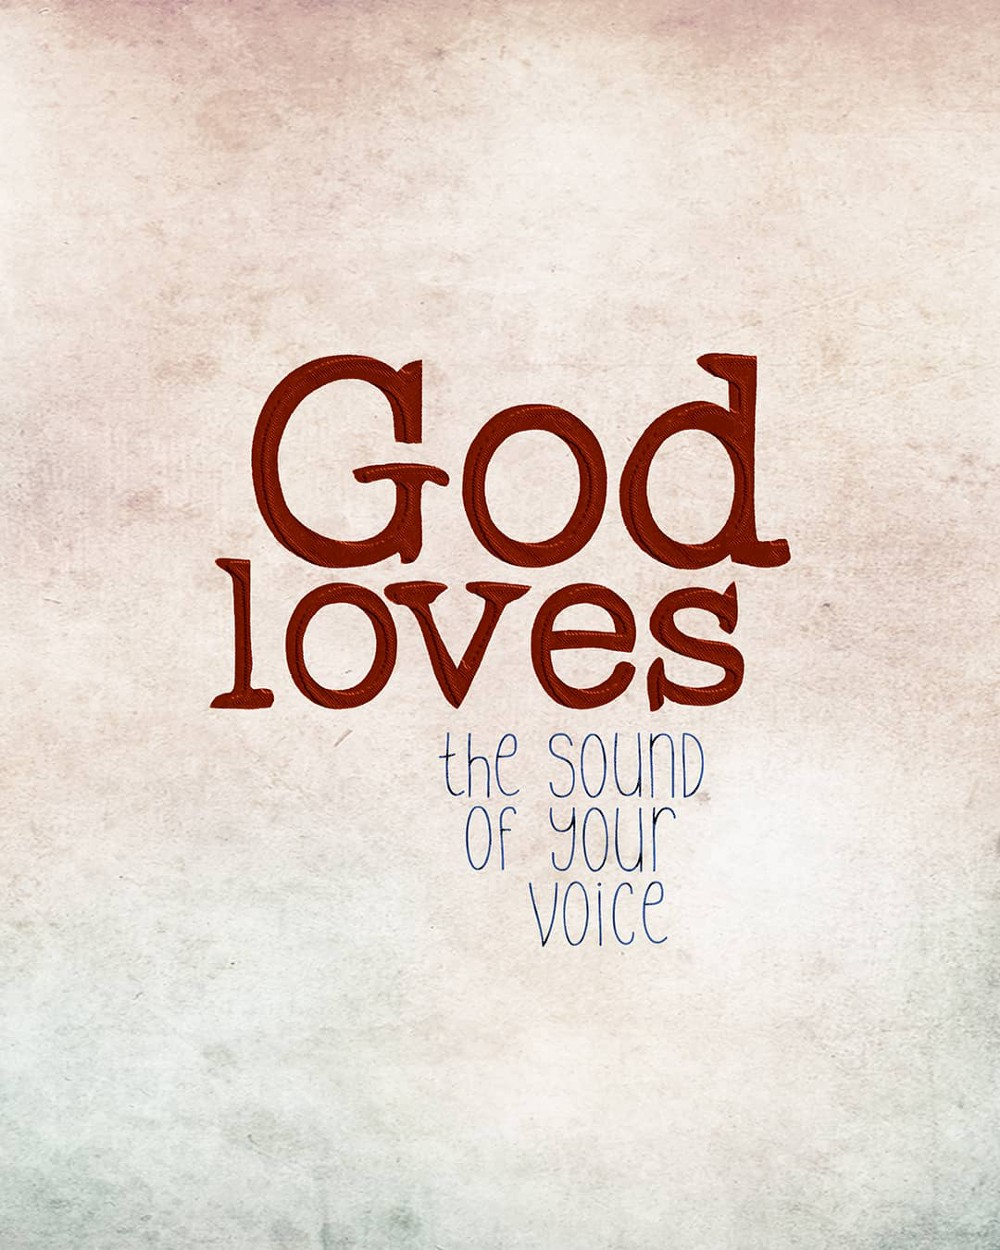 God loves the sound of your voice—small voice today